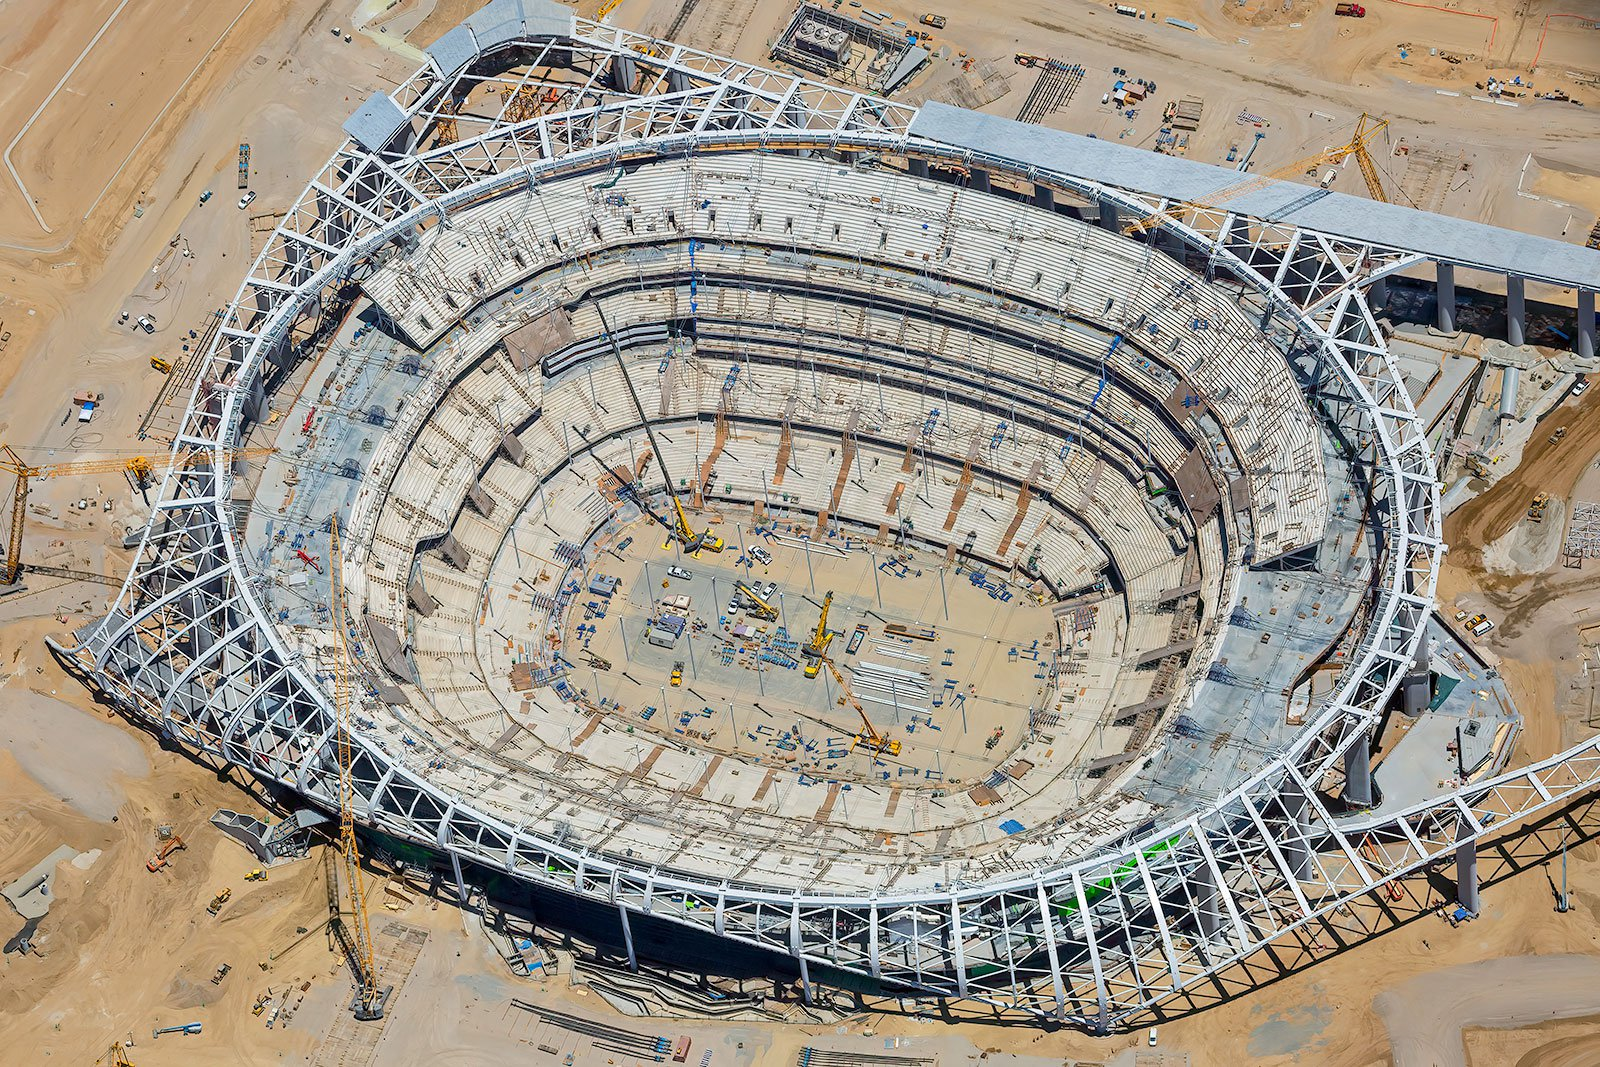 West Coast Aerial Photography Inc S Aerial Photographs Are Featured By The Los Angeles Rams West Coast Aerial Photography Inc